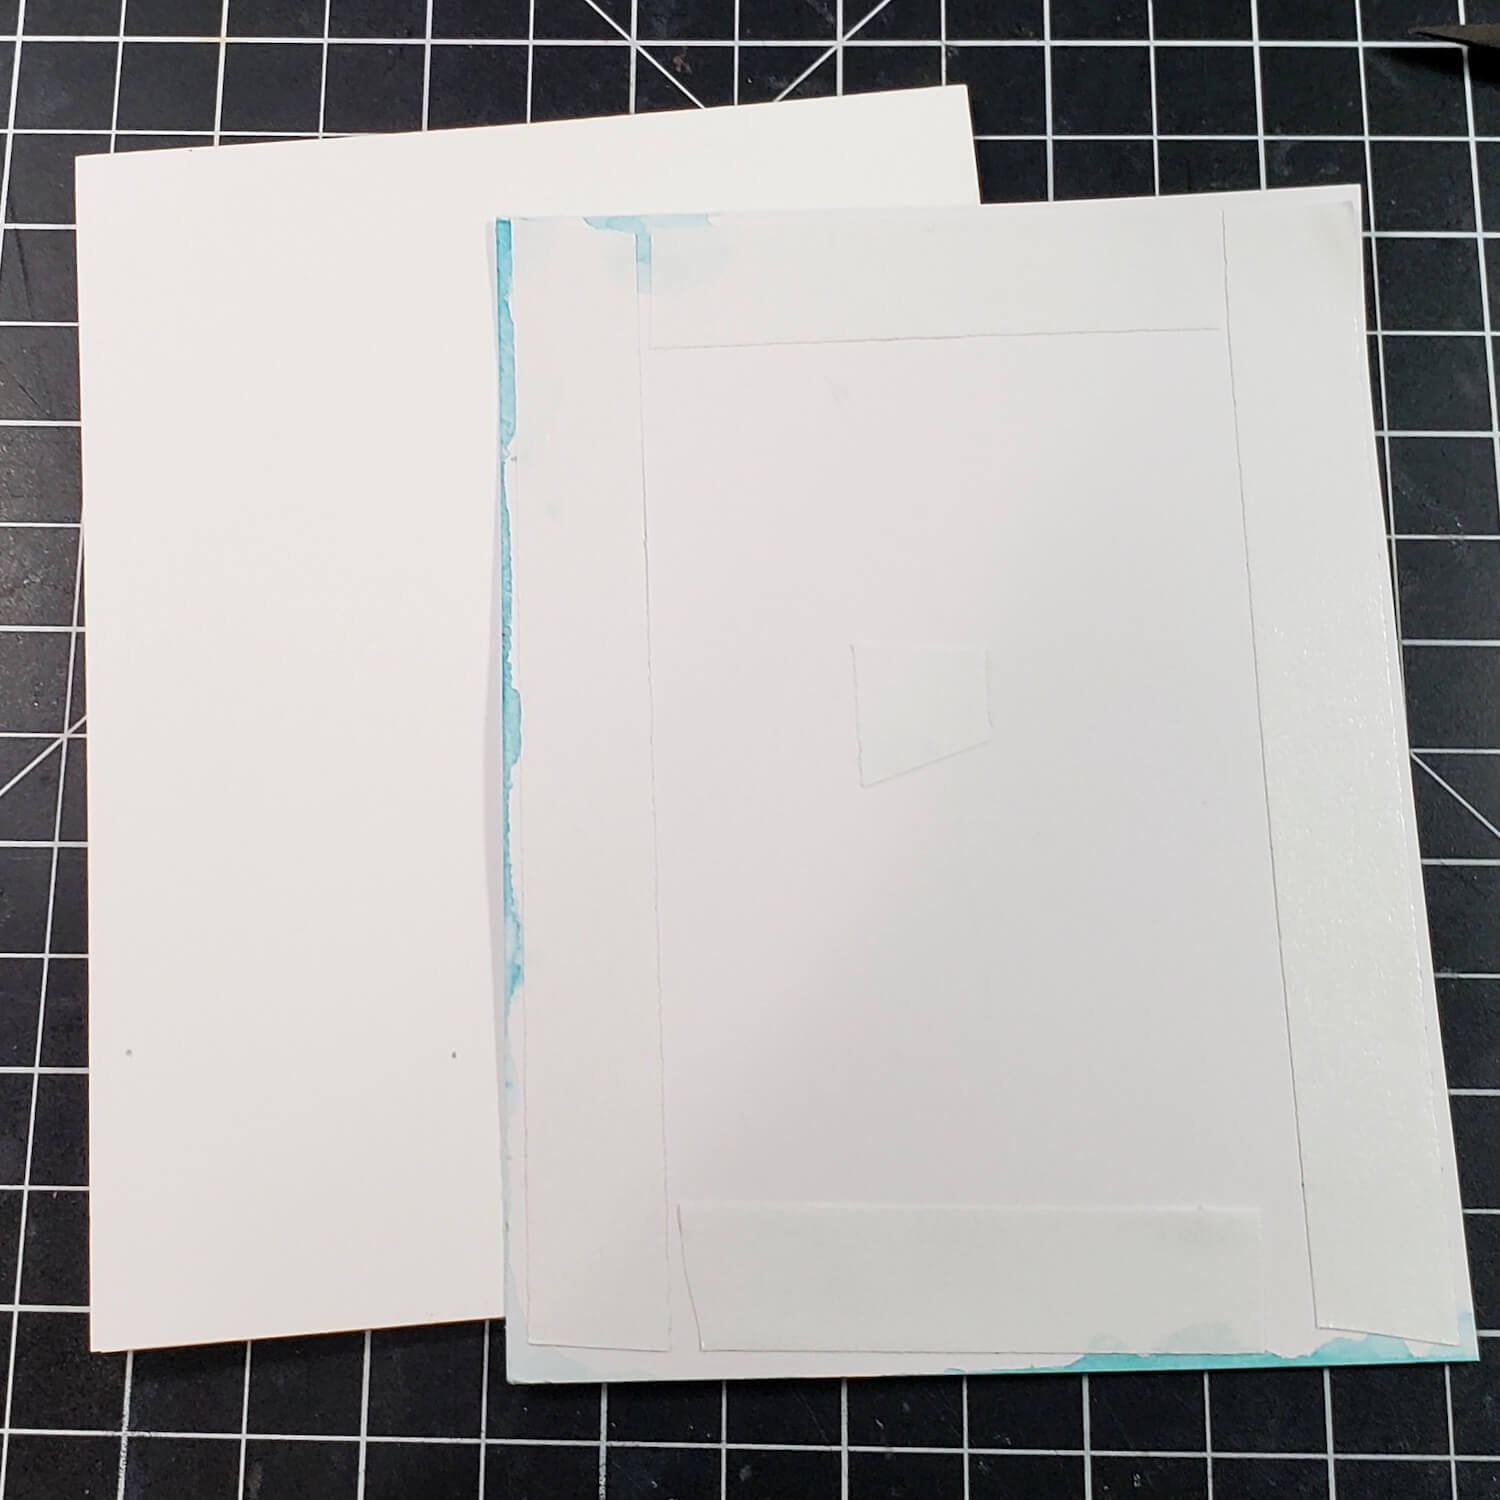 Double-sided tape on back of card panel